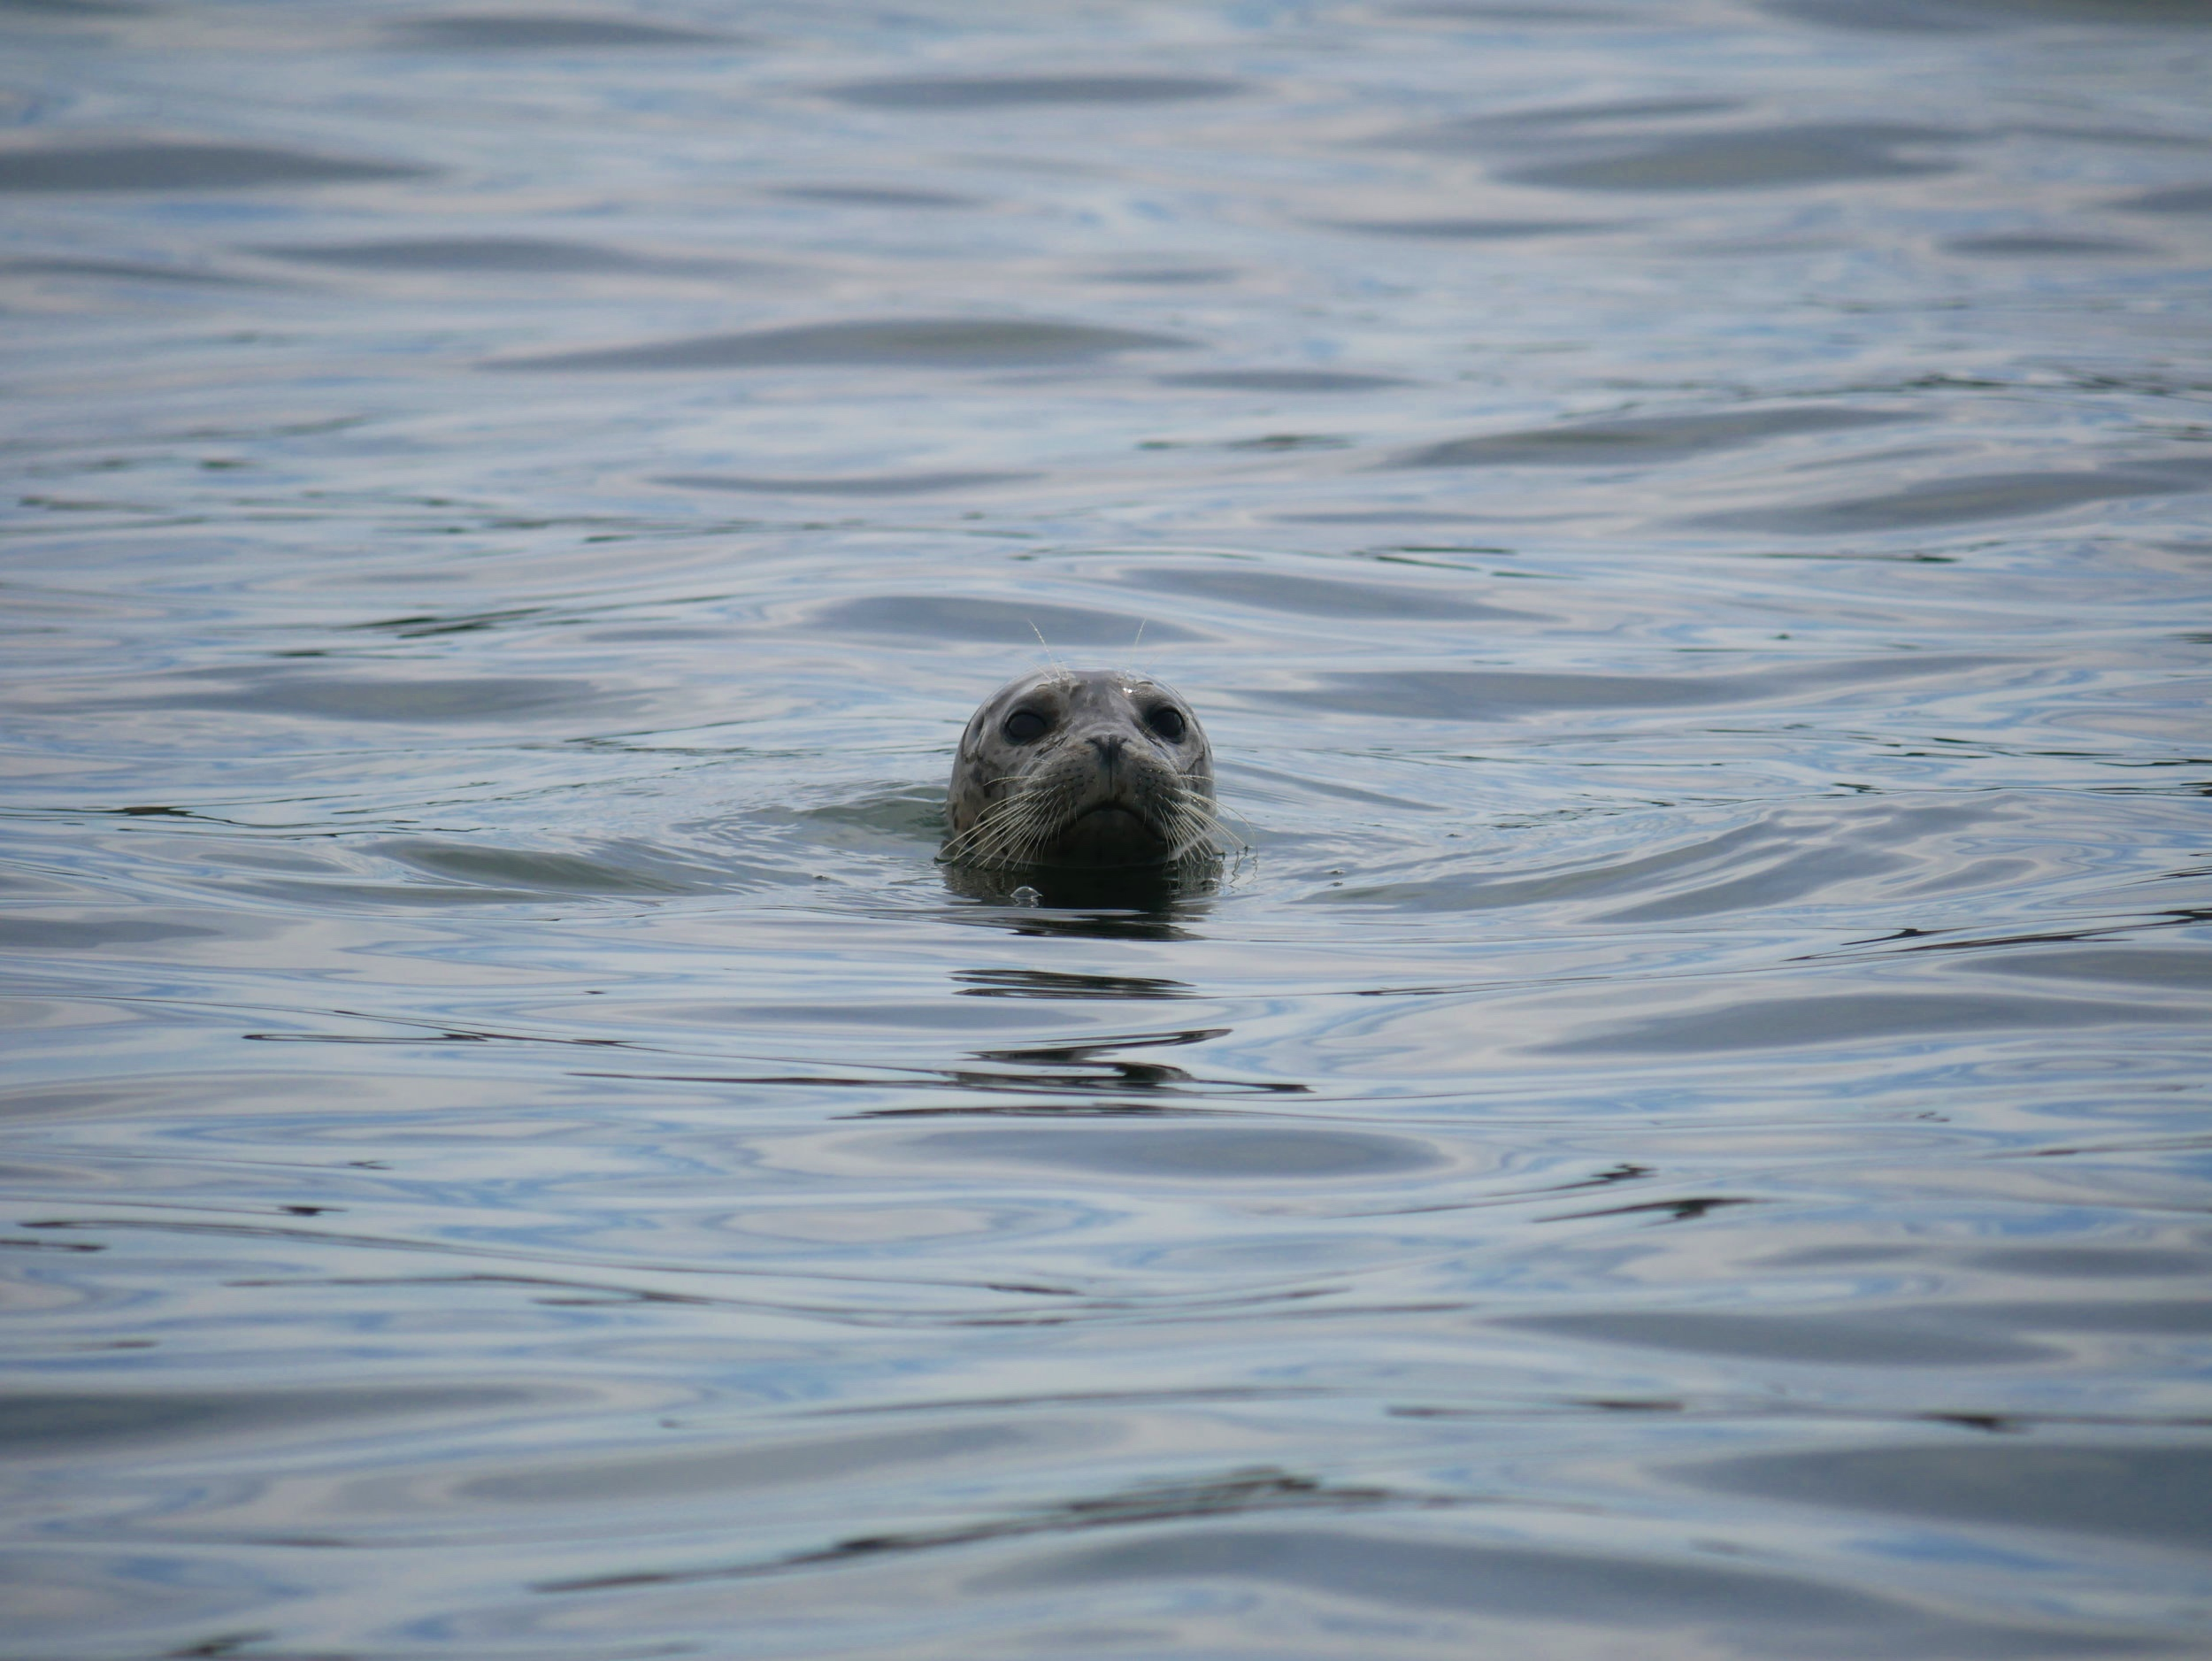 Curious Harbour Seal investigates the boat. Photo by Val Watson